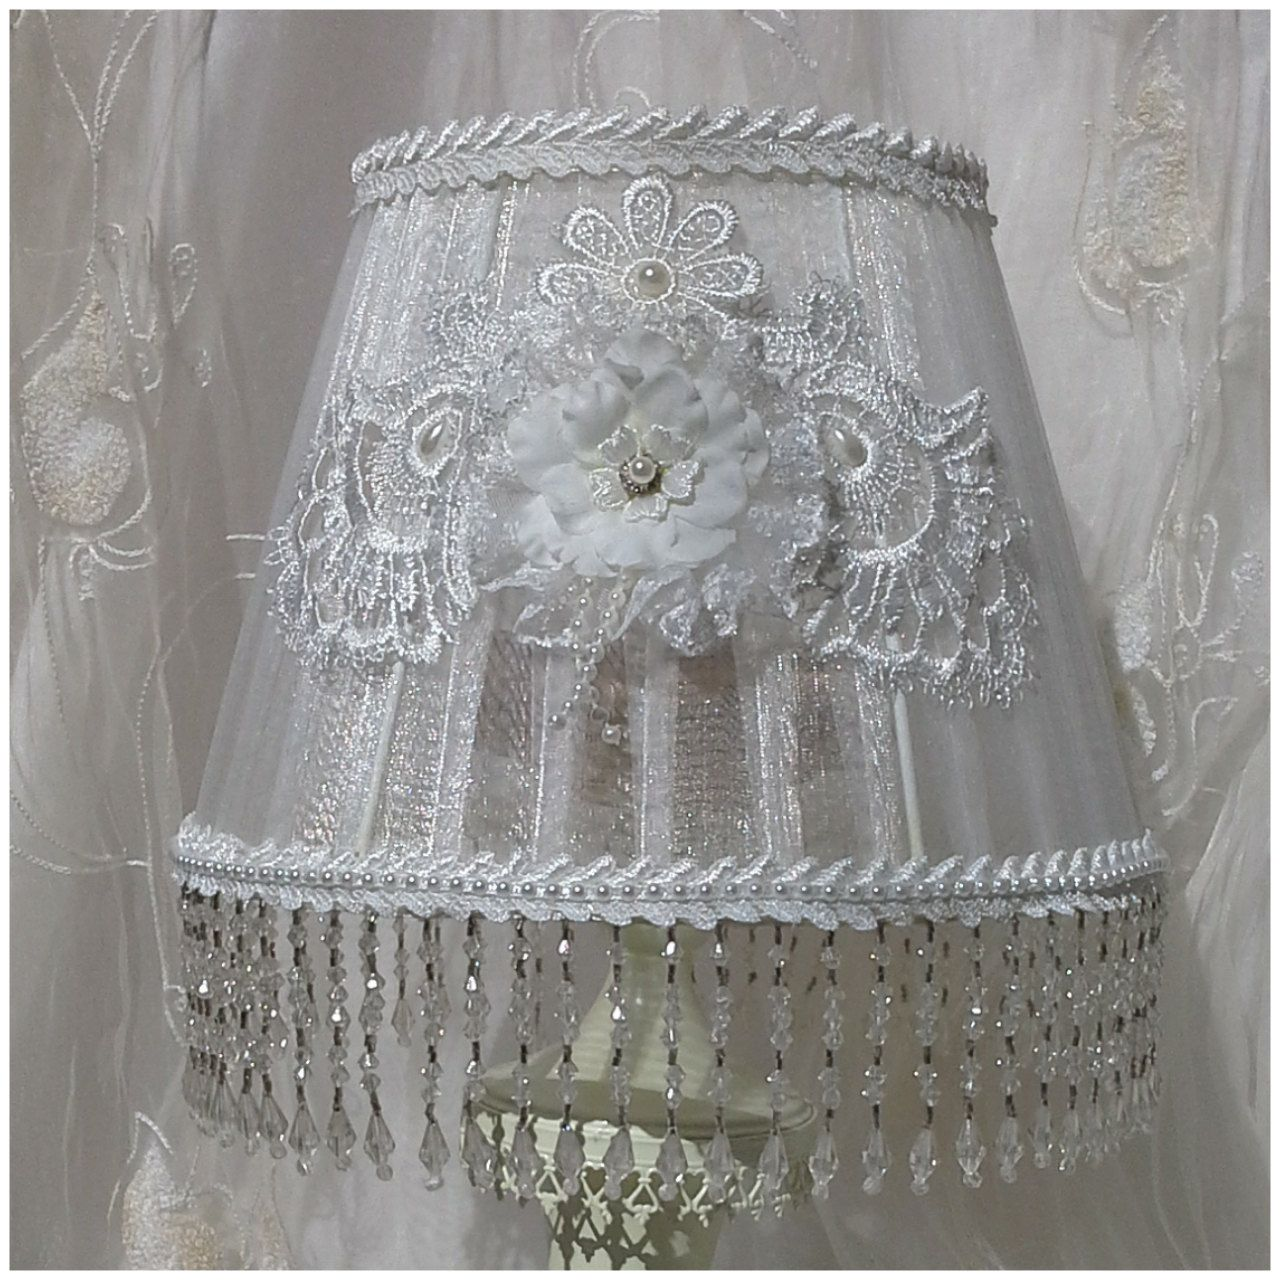 Shabby chic lampshade organza lampshade white lampshade lacey shabby chic lampshade organza lampshade white lampshade lacey lamp shade bedroom lampshade home decor bedroom decor lamp shades by aligri on etsy aloadofball Choice Image